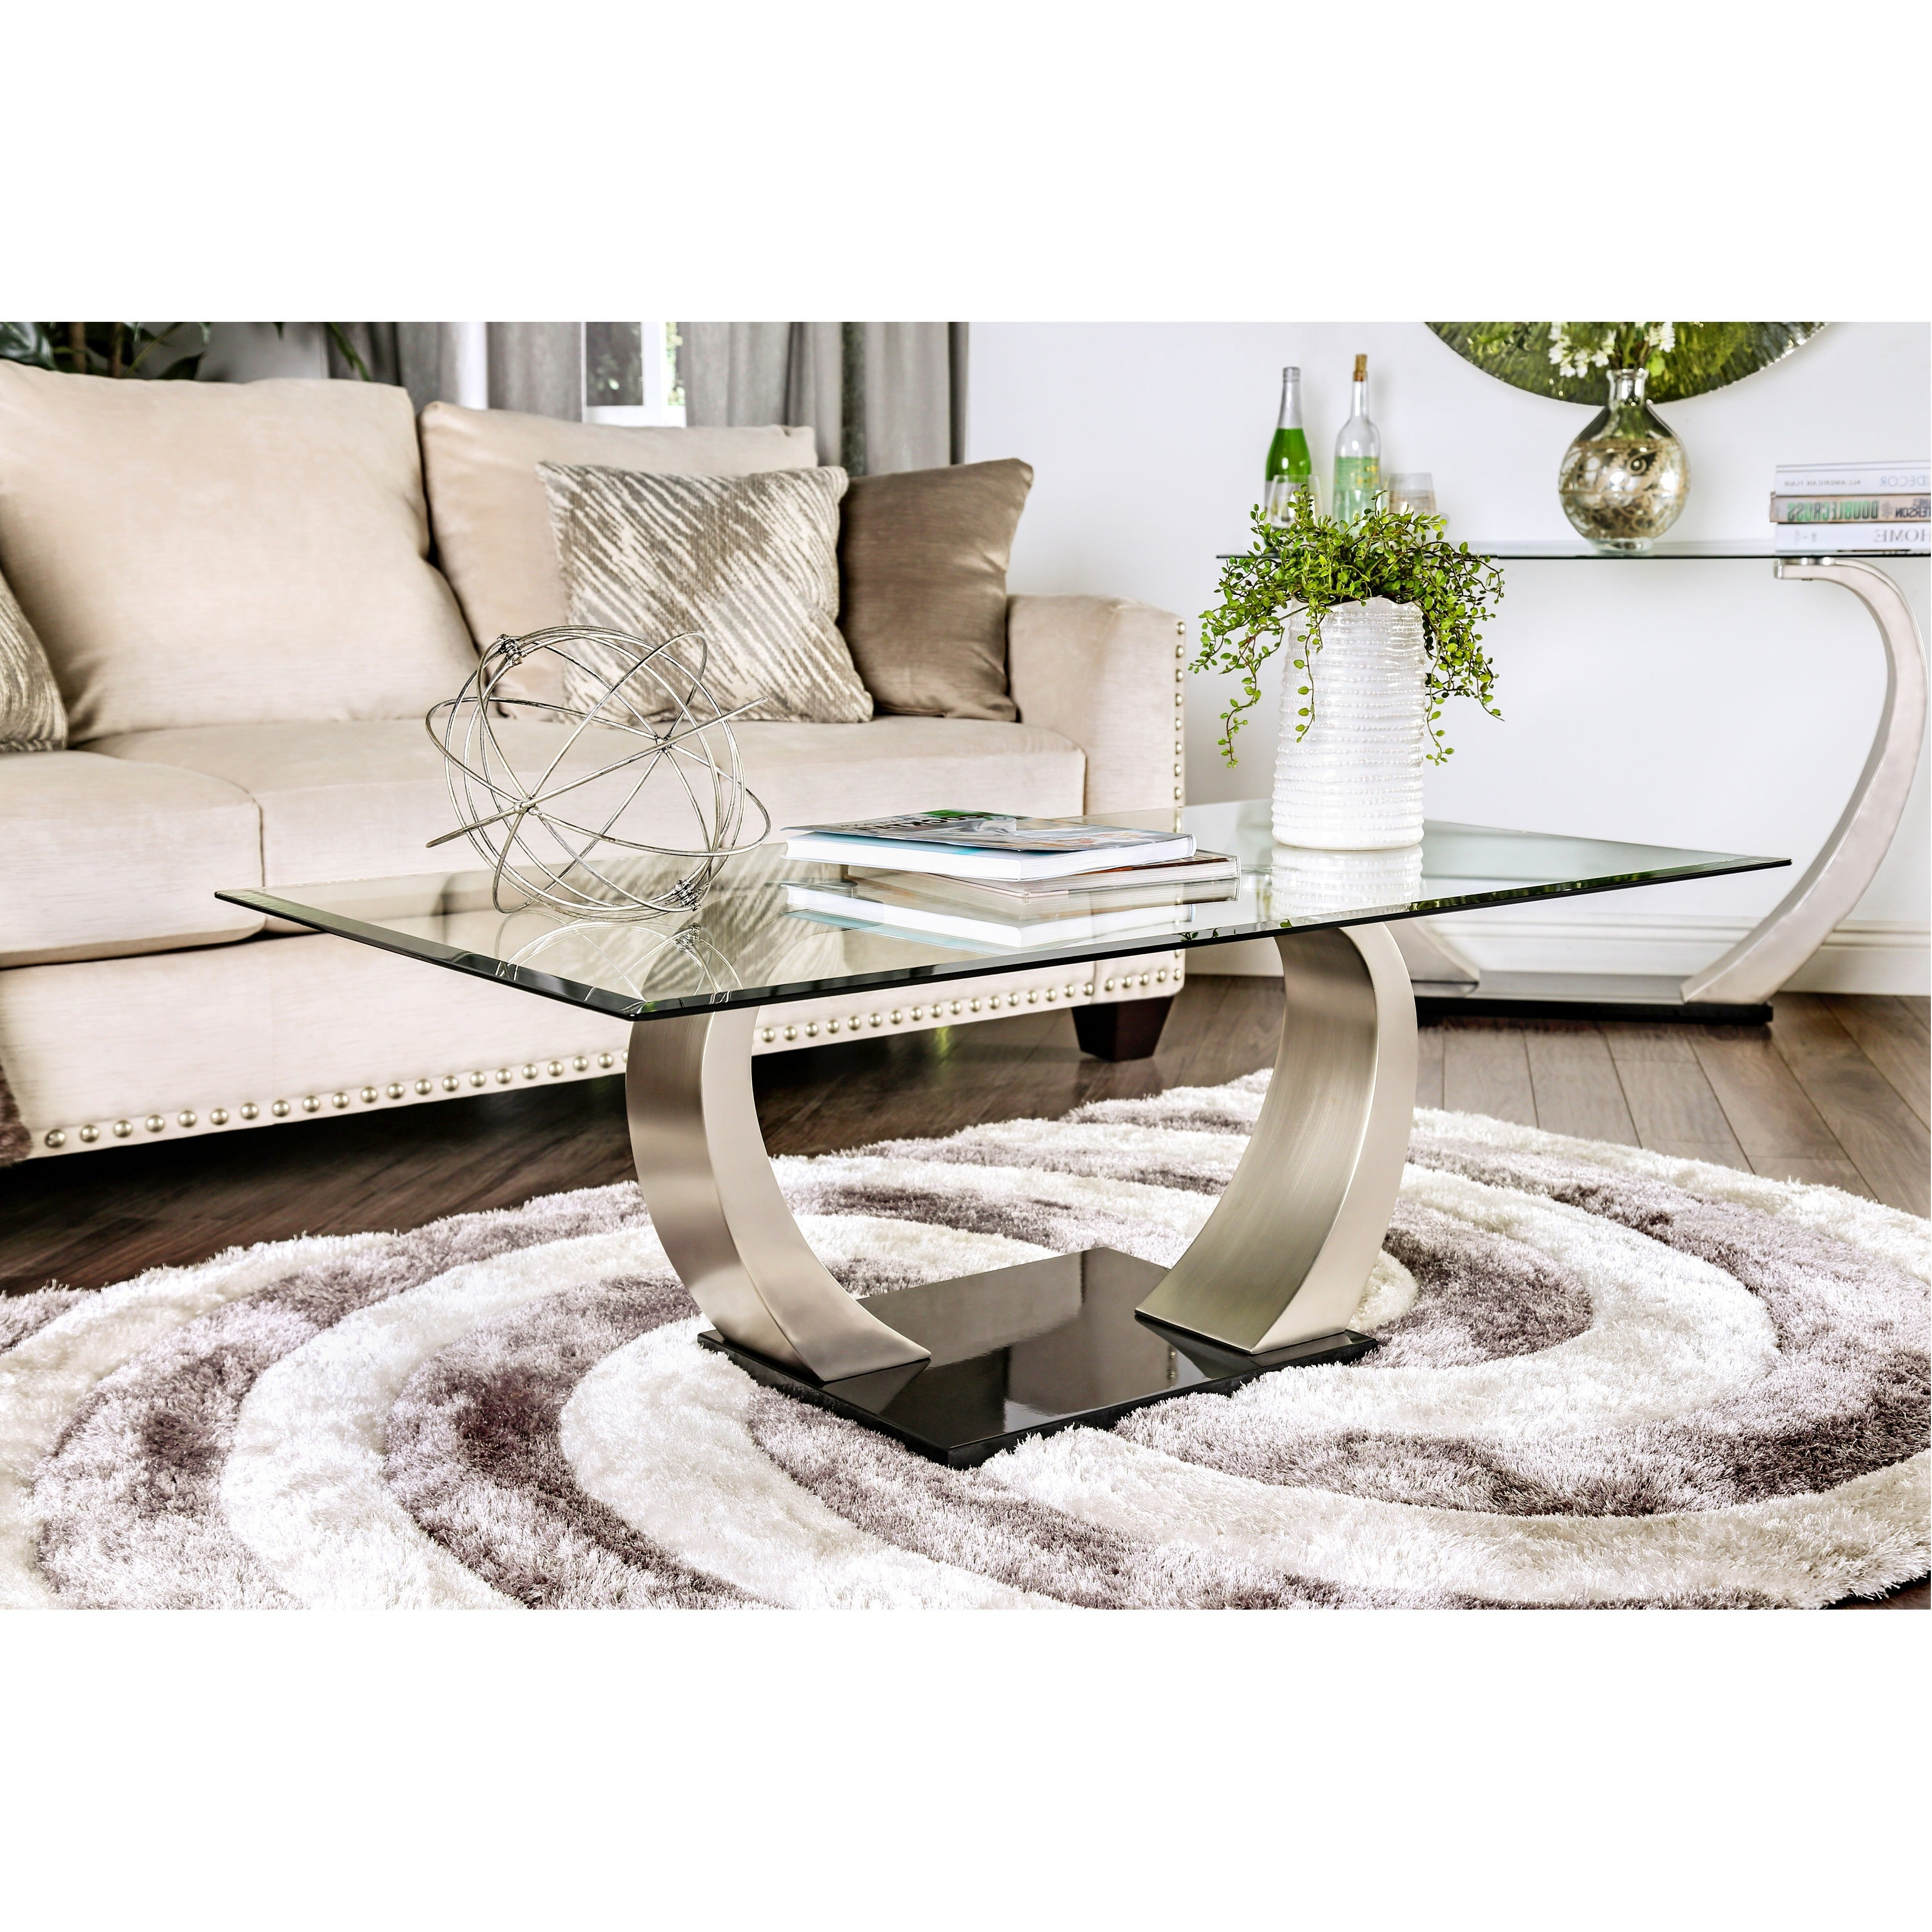 Popular Carmella Satin Plated Coffee Tables With Regard To Carmella Satin Plated Coffee Tablefoa (View 3 of 20)